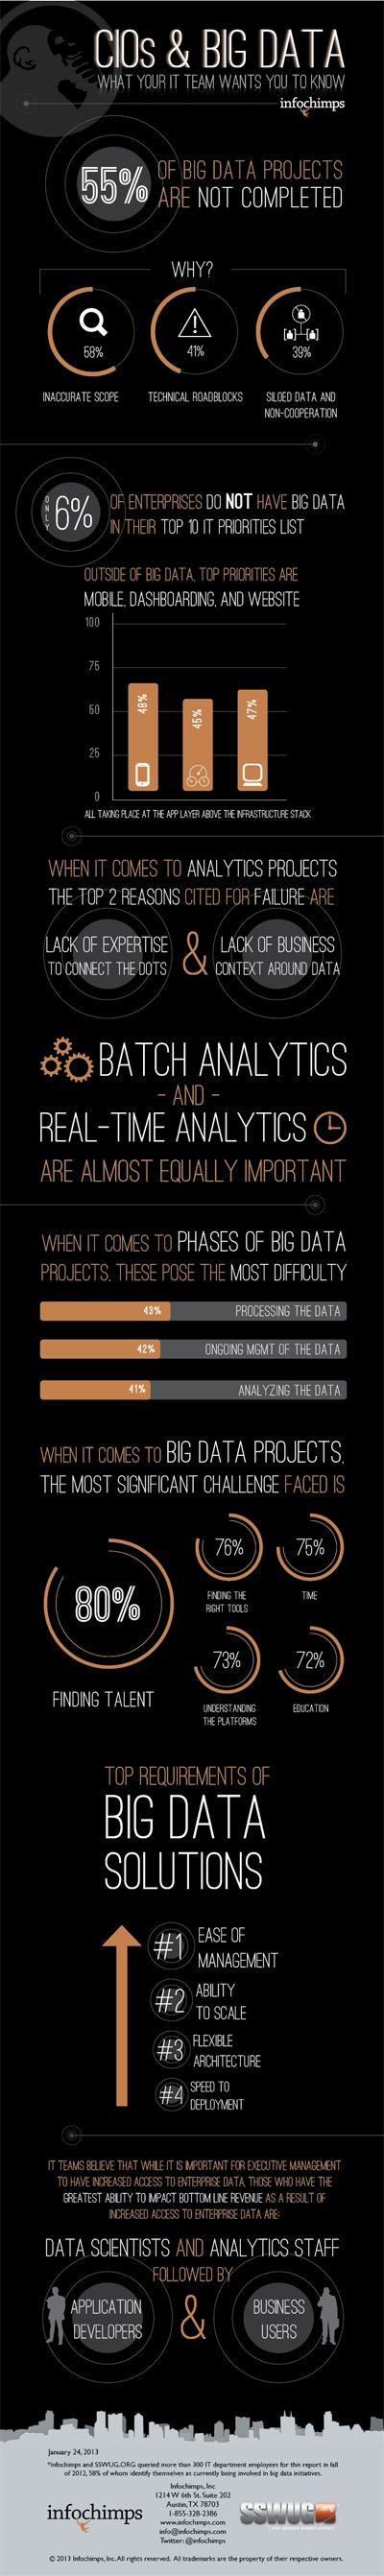 The CIOs and Big Data - For more information on Big Data, visit - http://www.happiestminds.com/big-data/ #Bigdata